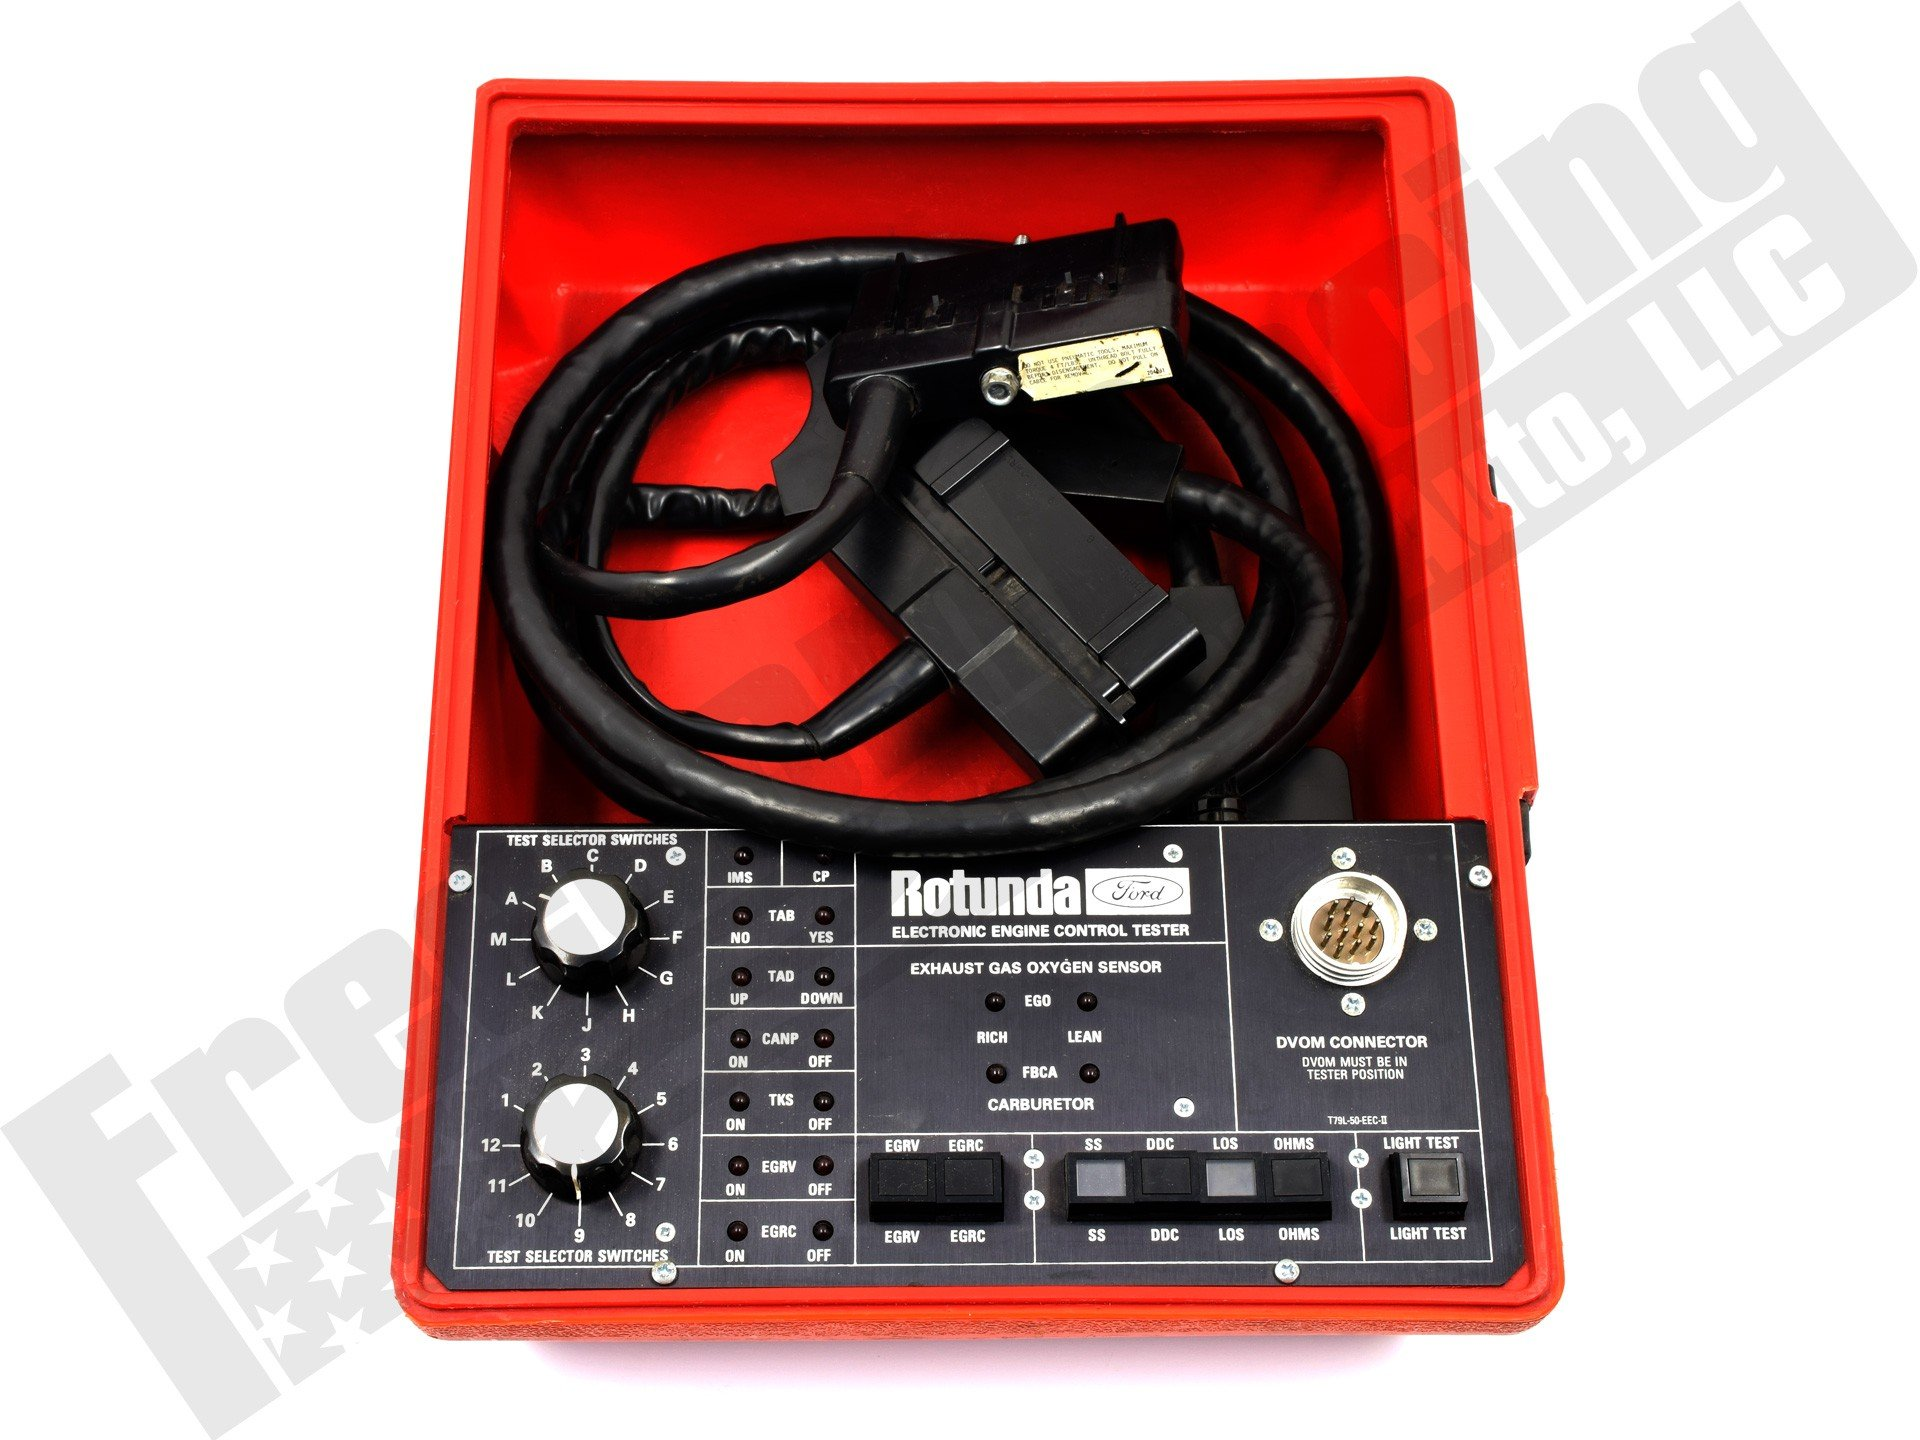 Engine Control Console : Electronic engine control system tester t l eec